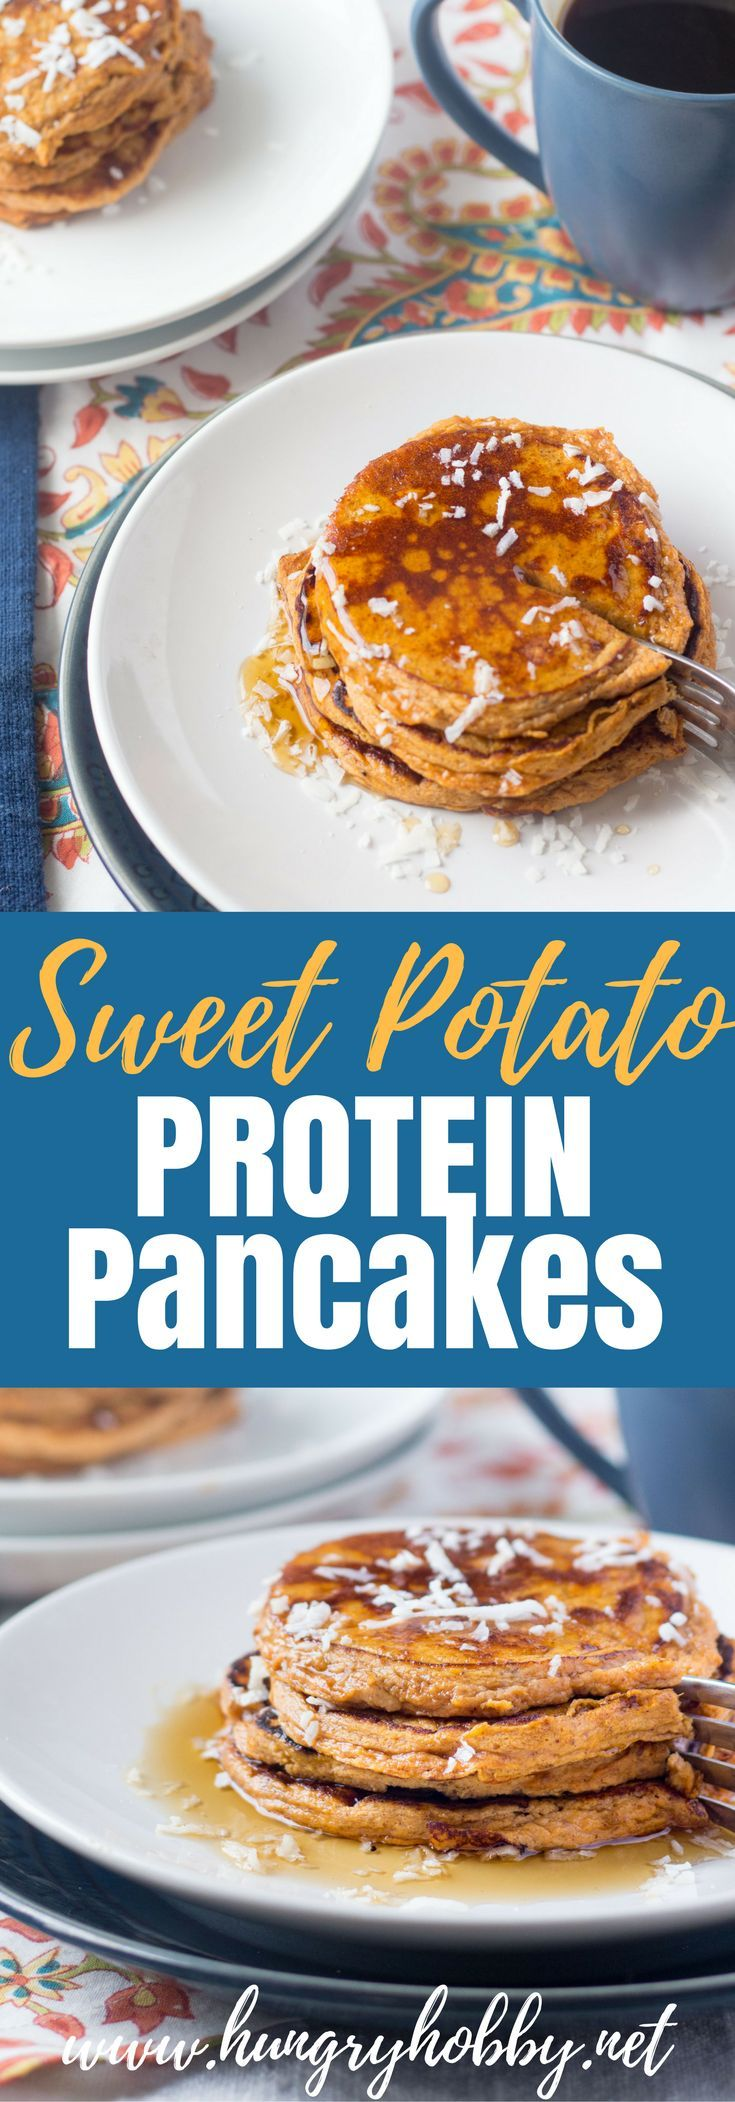 For all the sweet potato lovers out there these Sweet Potato Protein Pancakes are AMAZING and gluten free!  via @hungryhobby